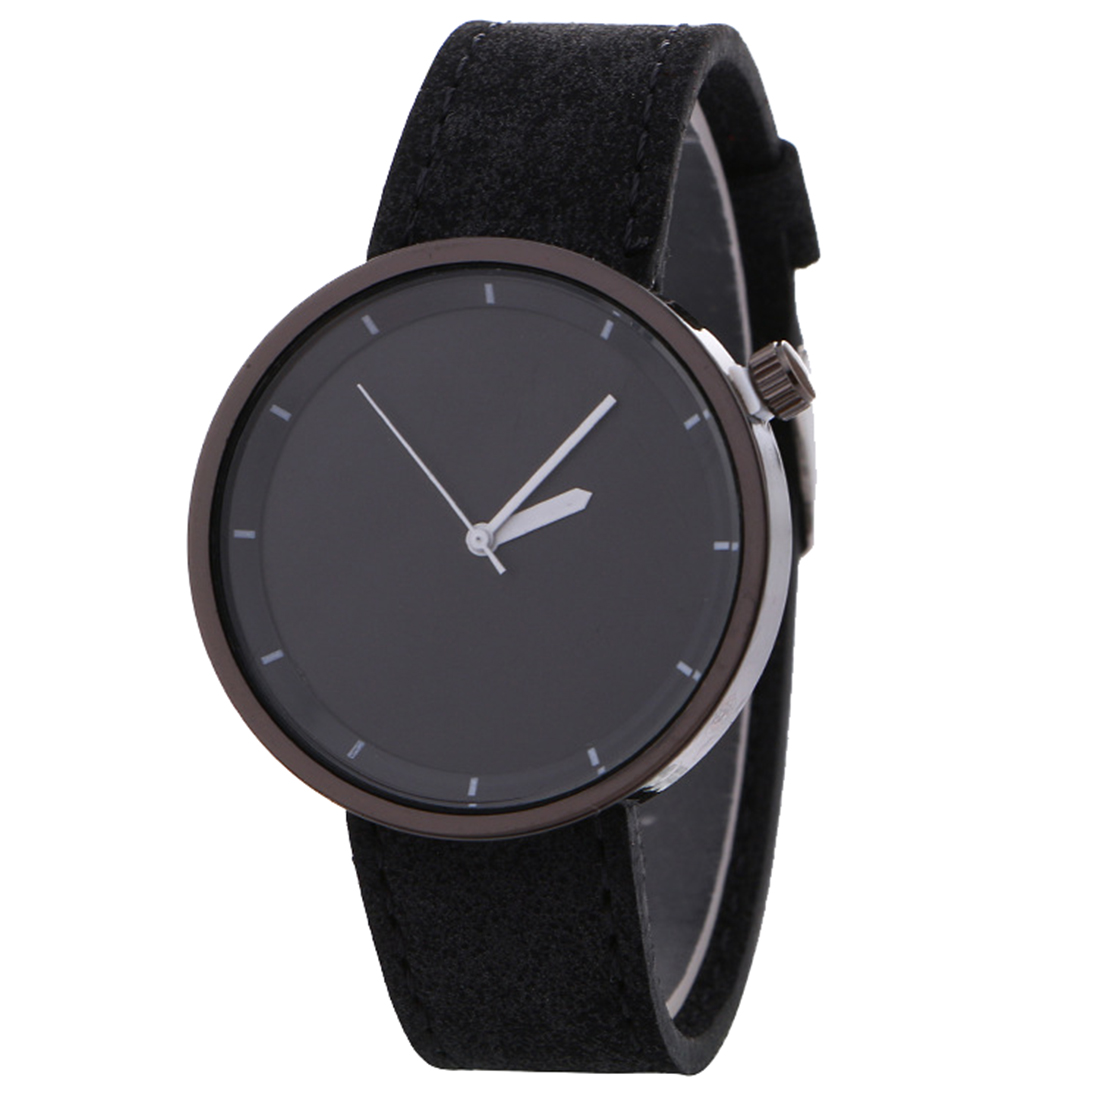 Black Quartz Watches Women Leather Wristwatches Relogio Feminino Matte Simple Clock New Fashion Watch Casual Adjustable Hour New 2017 new fashion tai chi cat watch casual leather women wristwatches quartz watch relogio feminino gift drop shipping